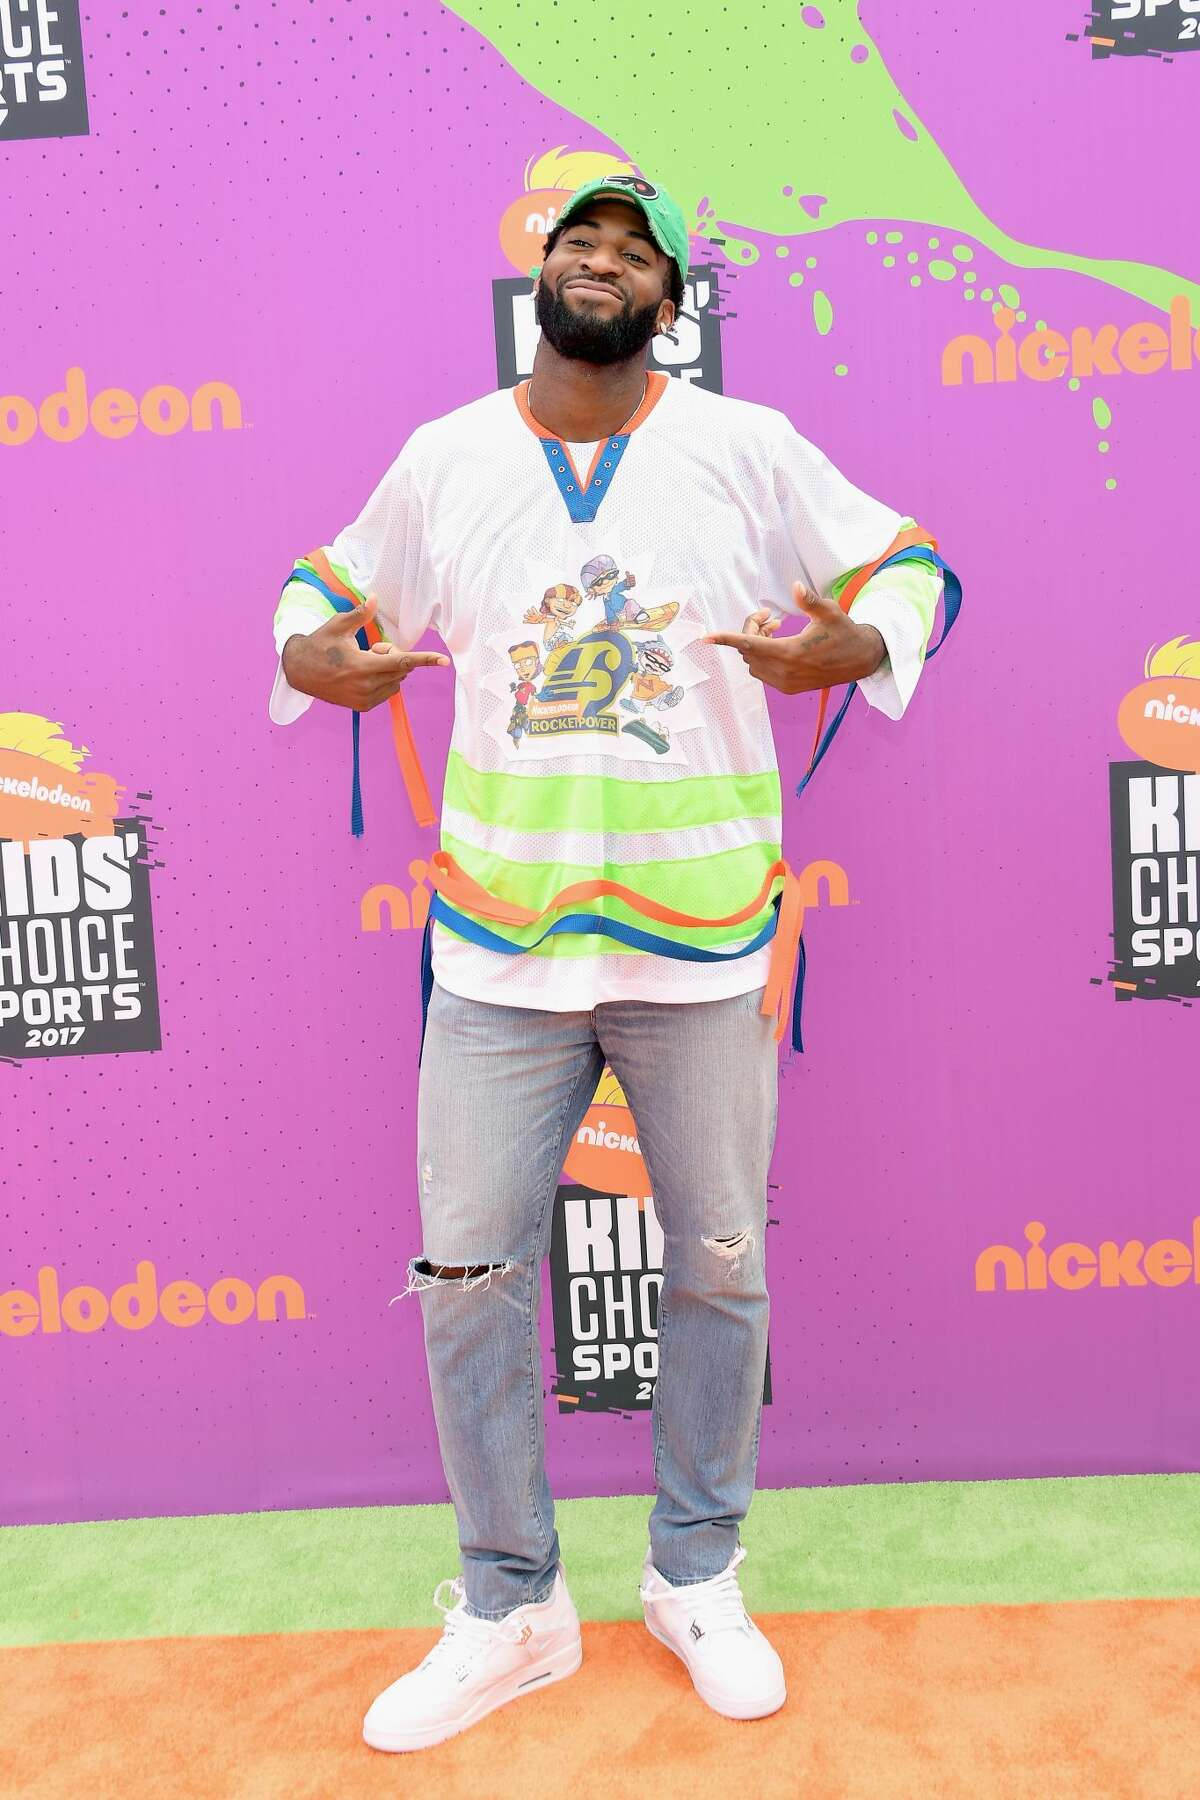 LOS ANGELES, CA - JULY 13: NBA player Andre Drummond attends Nickelodeon Kids' Choice Sports Awards 2017 at Pauley Pavilion on July 13, 2017 in Los Angeles, California. (Photo by Matt Winkelmeyer/Getty Images)